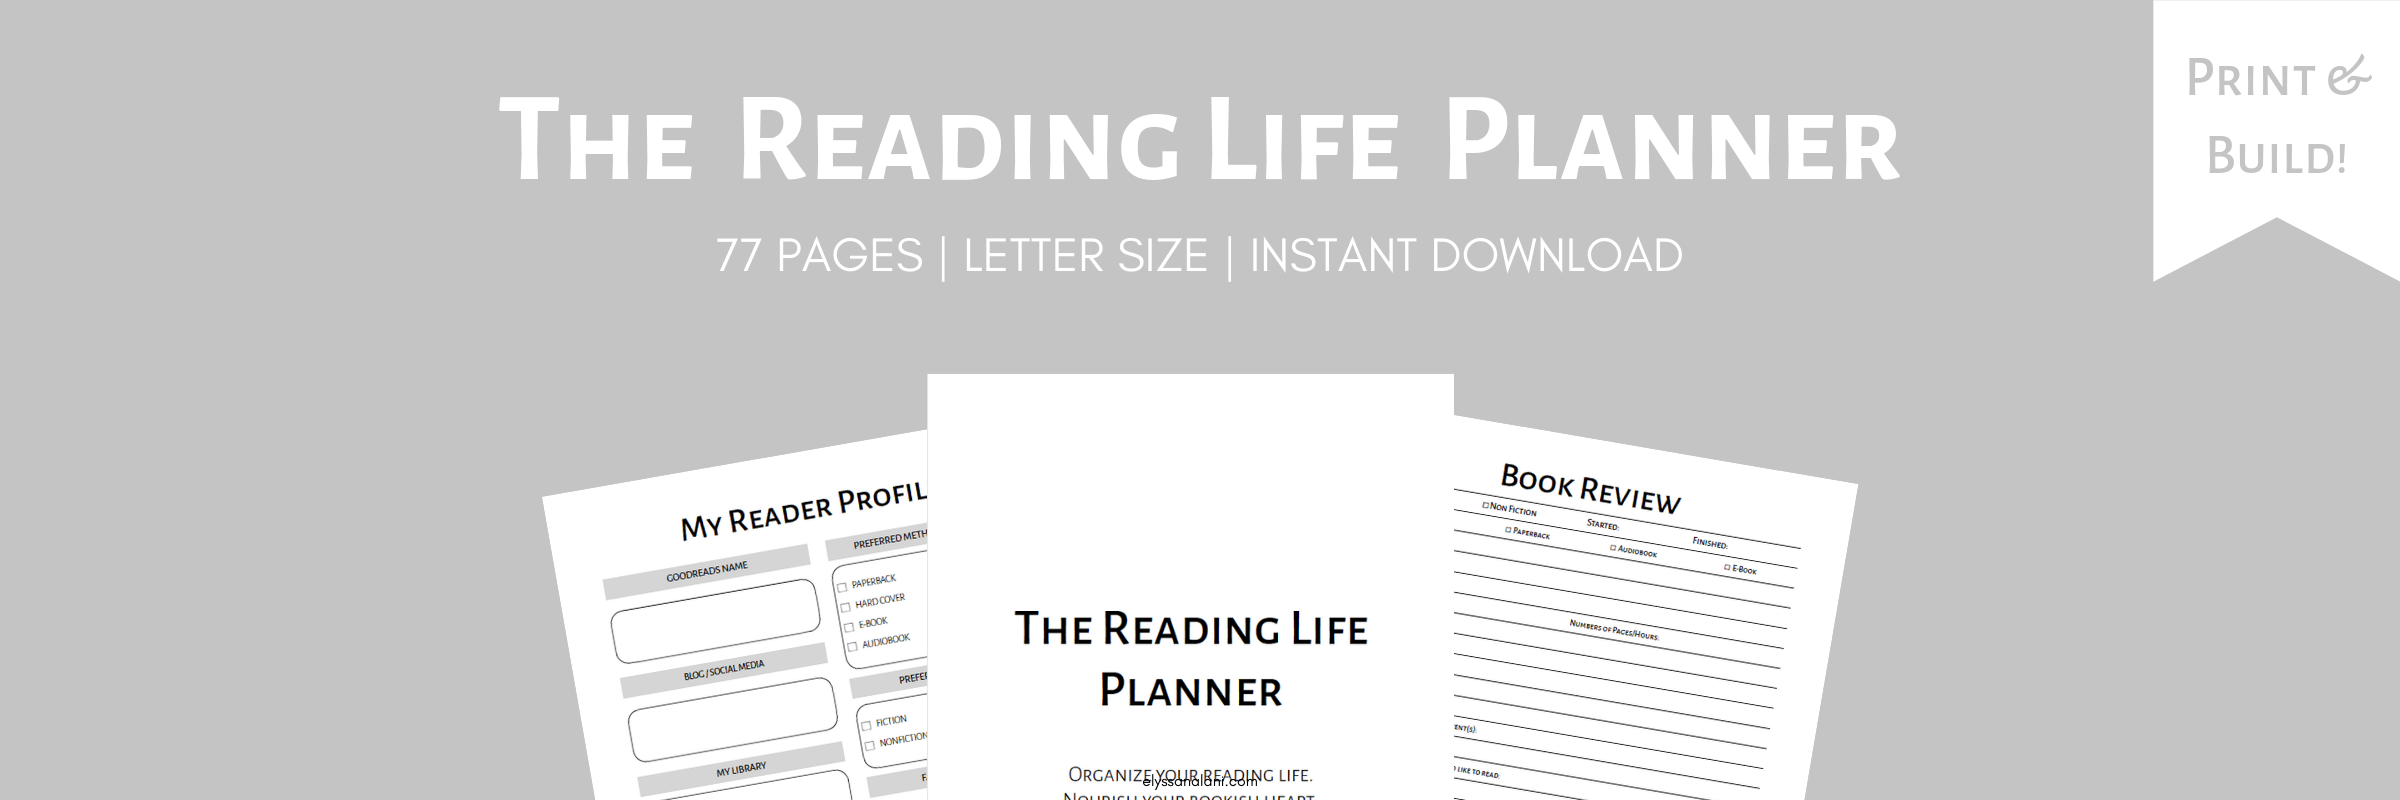 The Reading Life Planner UNDATED WEBSLIDER